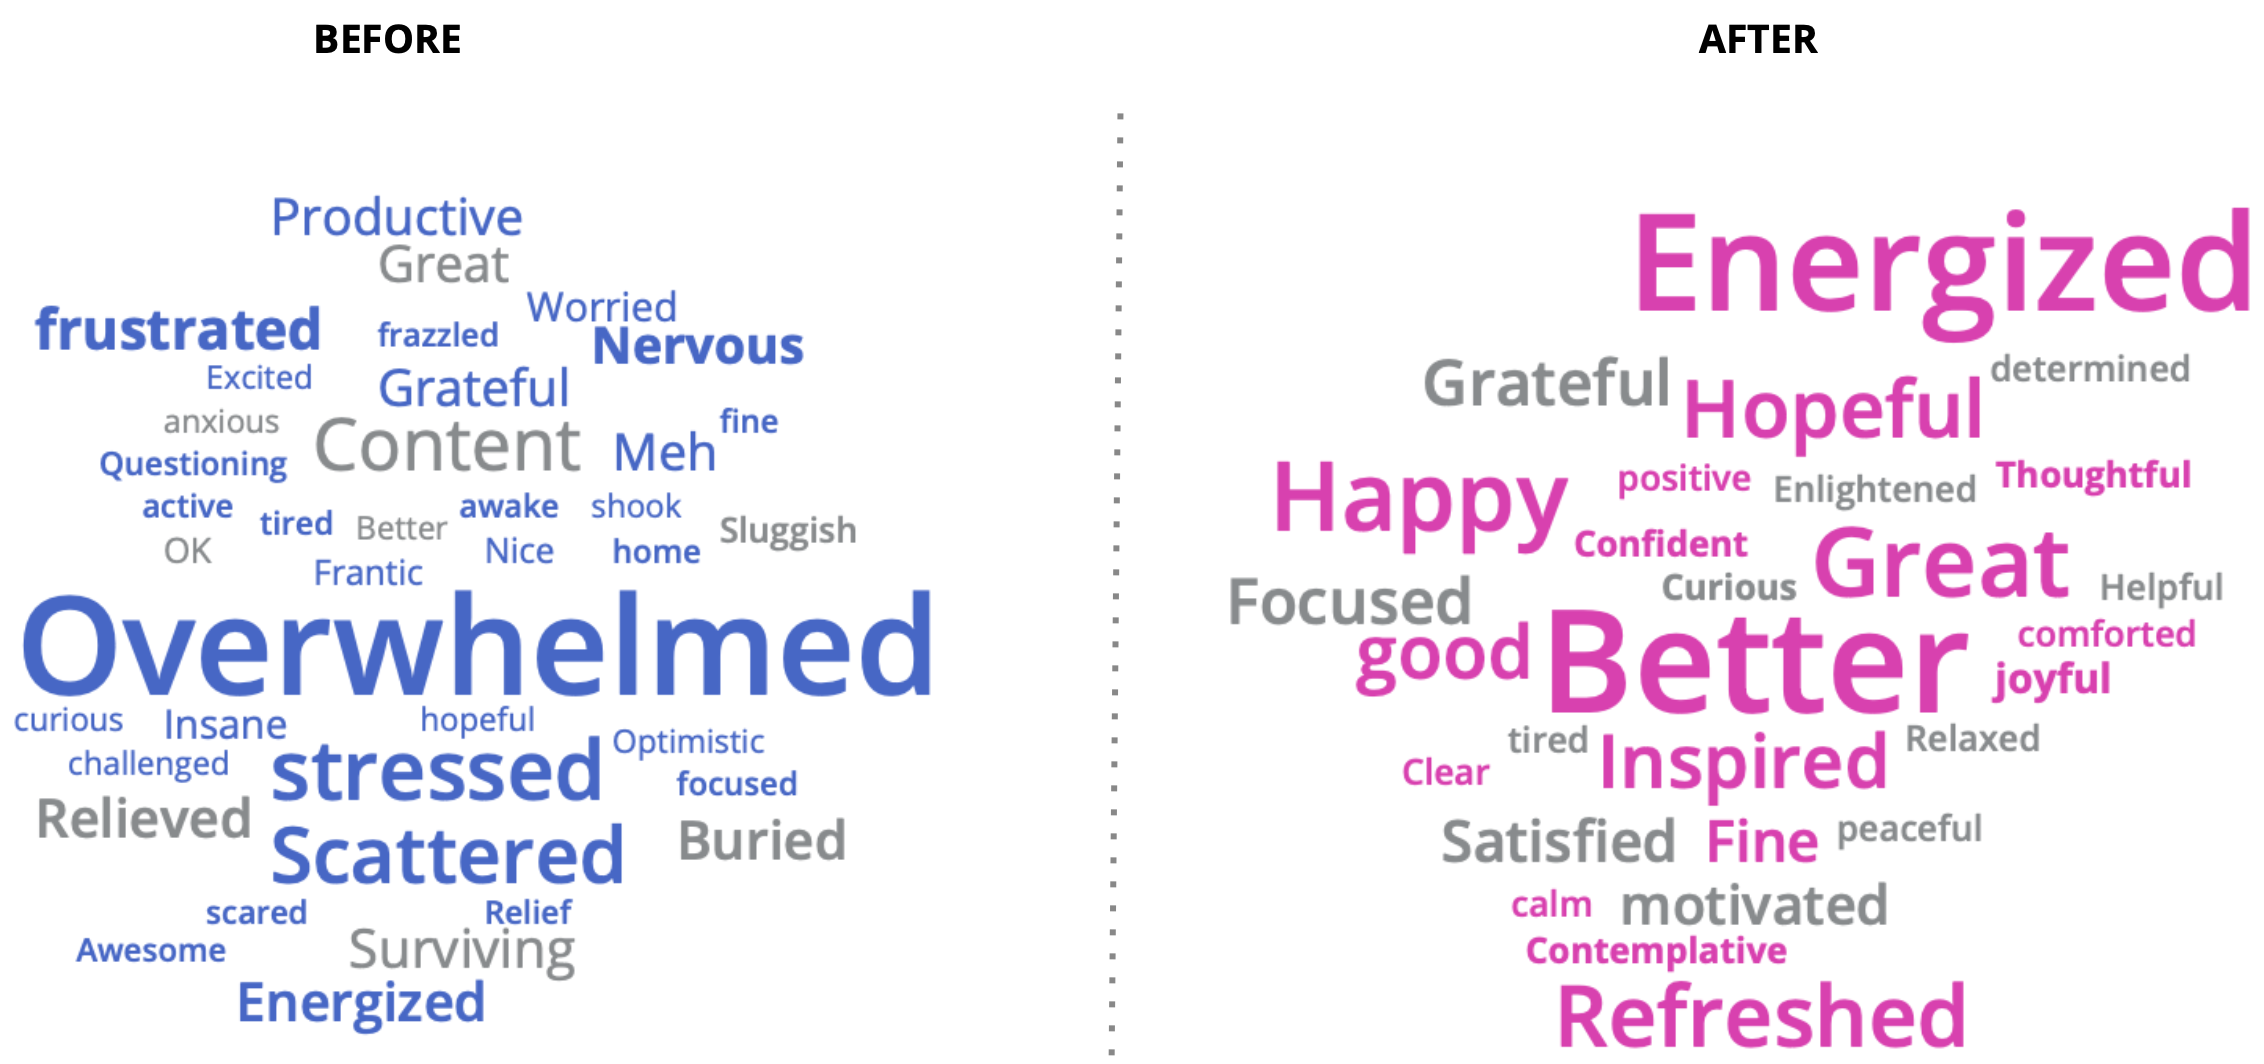 word cloud: before (overwhelmed, stressed etc) and after (energized, better etc)